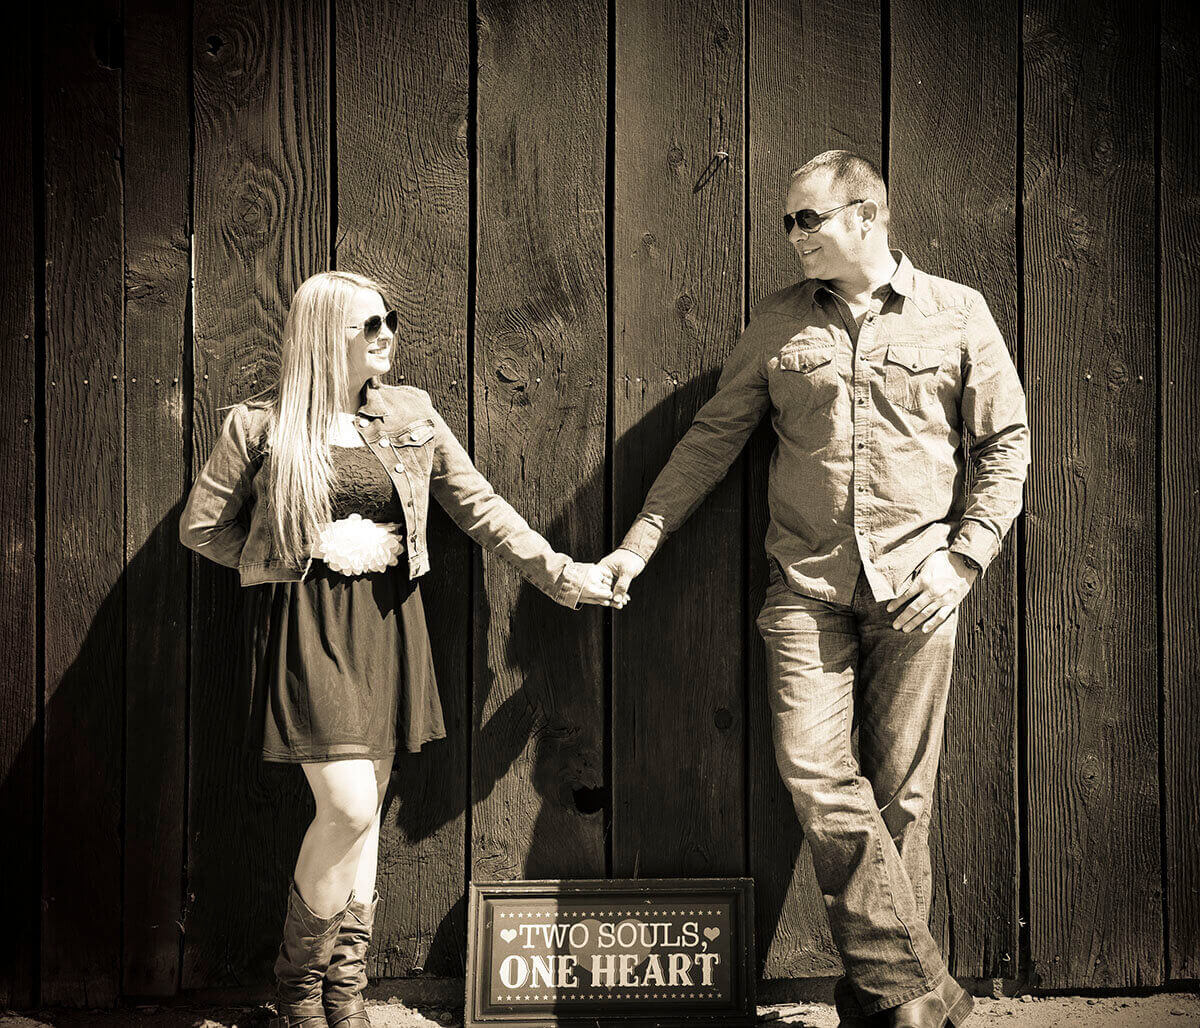 Non-color engagement photography is a popular option for some Bakersfield couples.